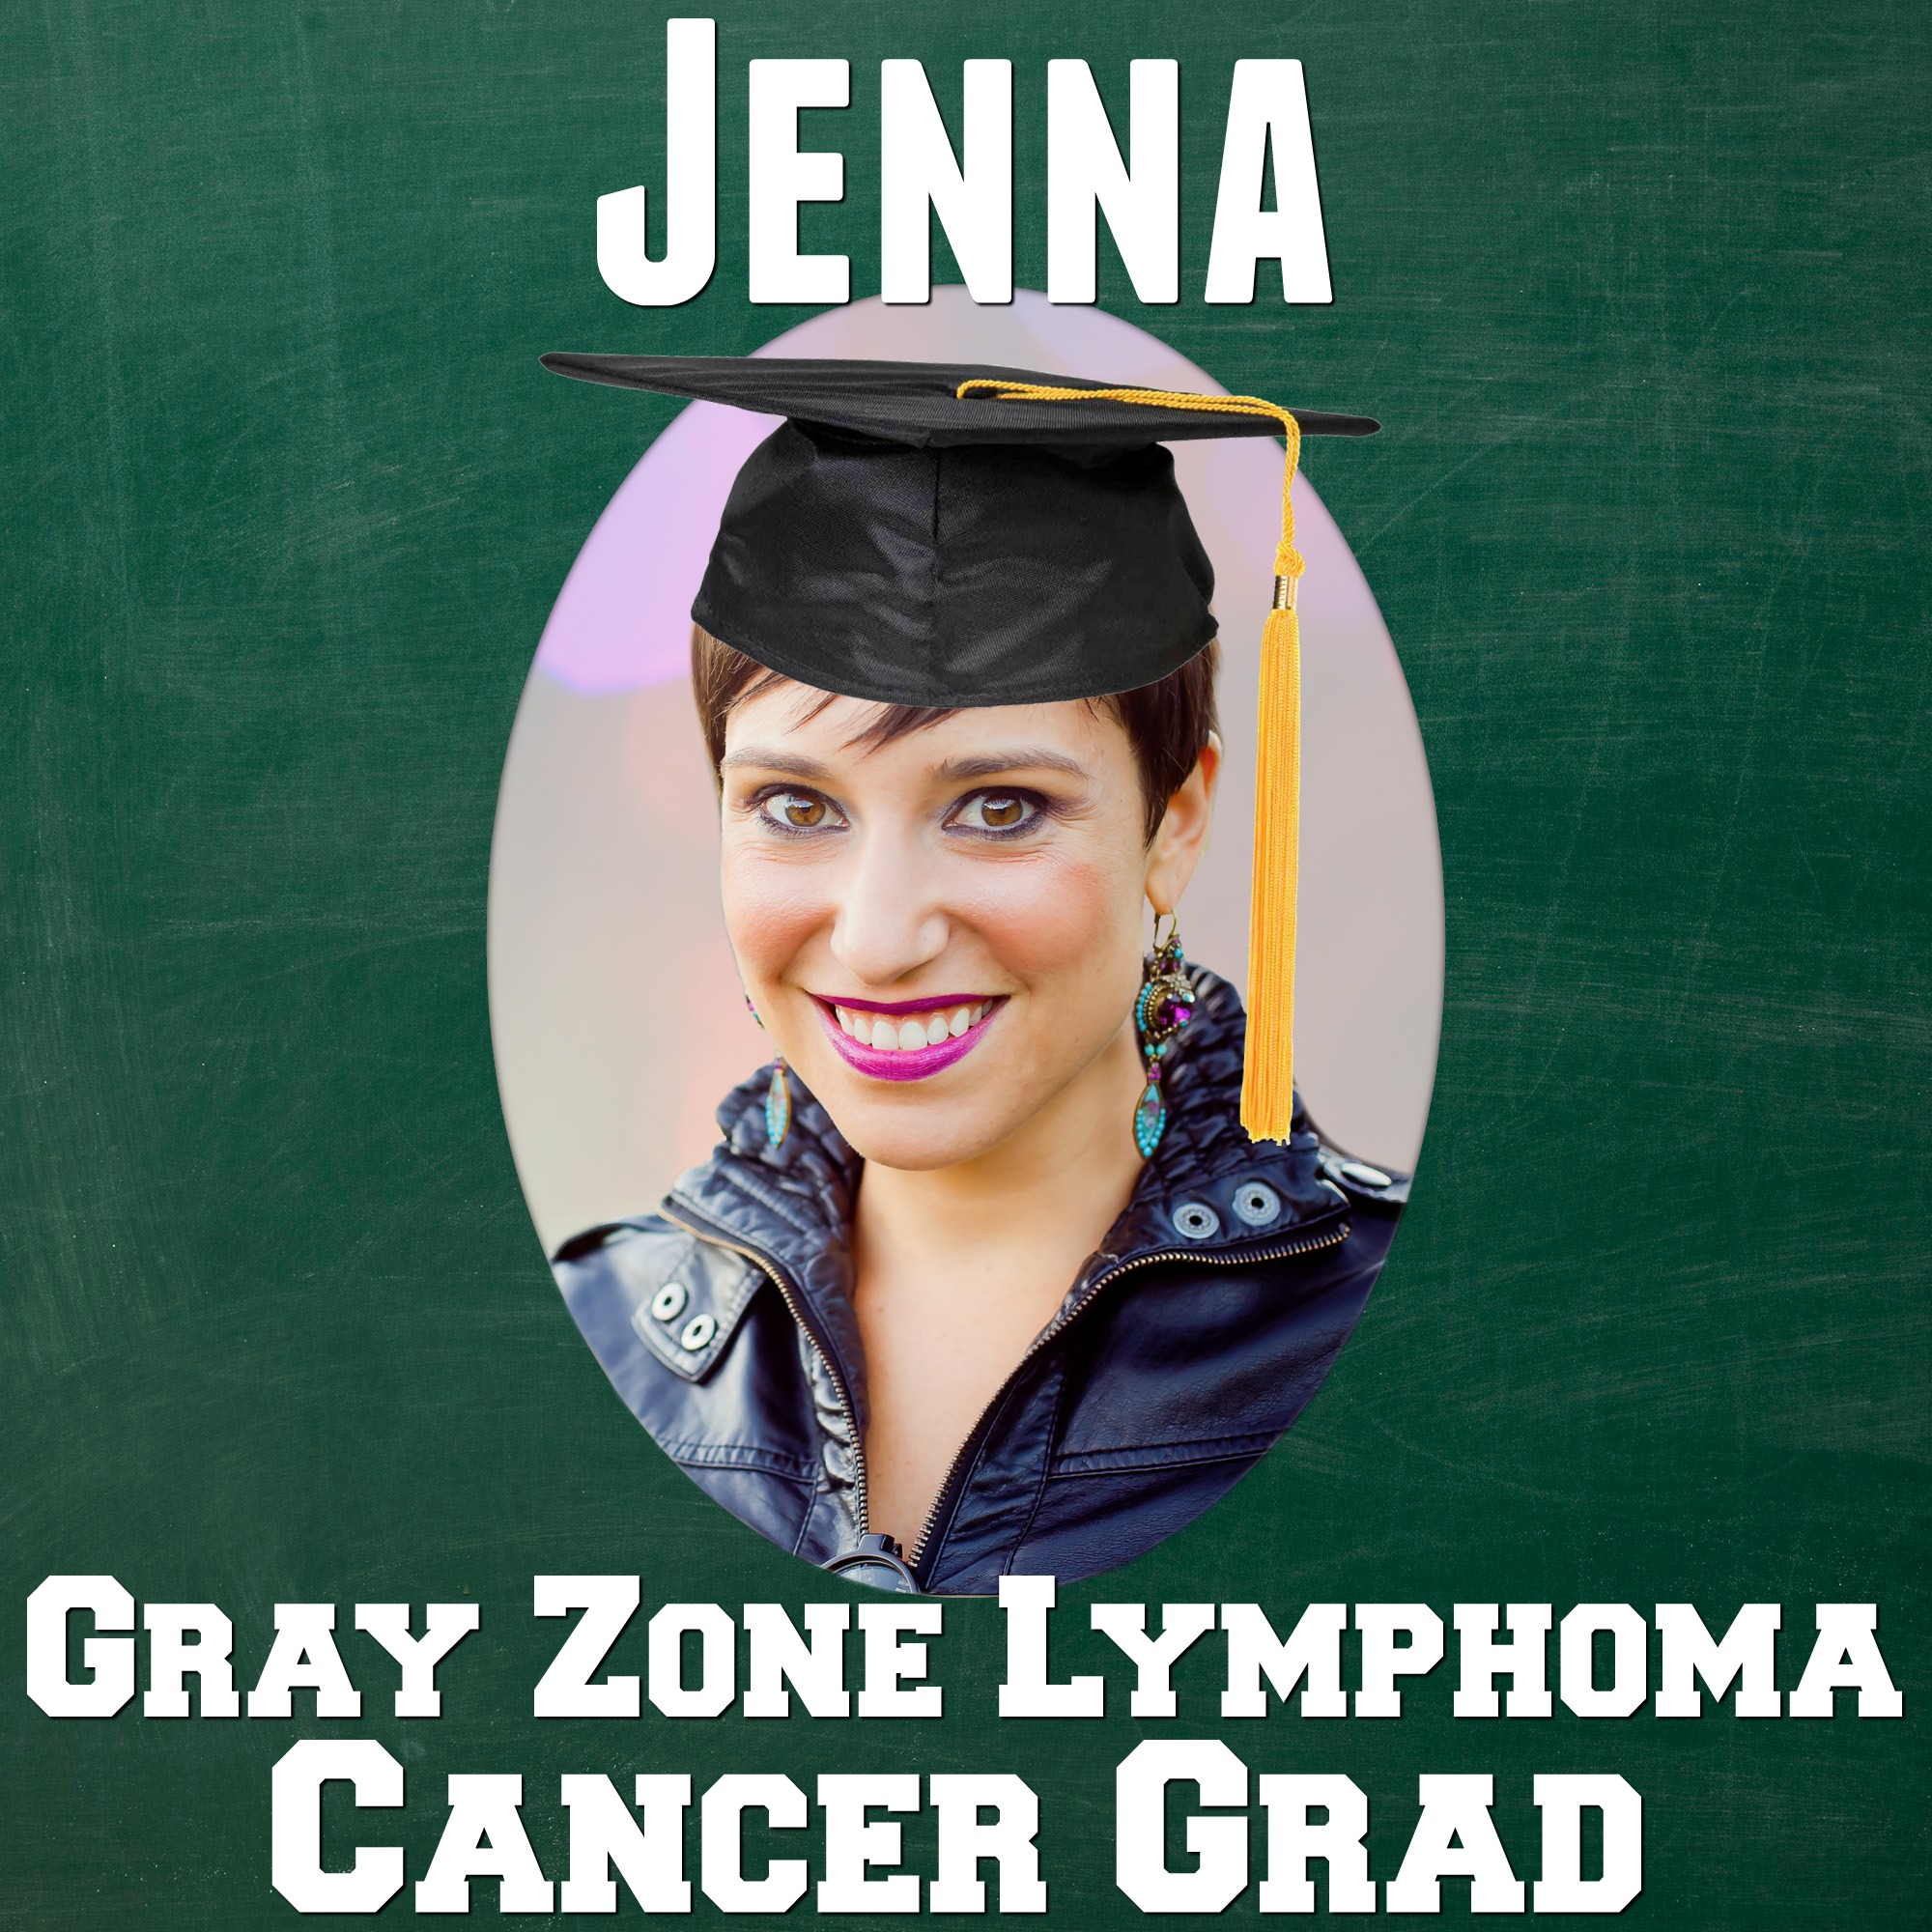 Jenna Benn Shersher Cancer Grad Yearbook CancerGrad Lymphoma Twist Out Cancer